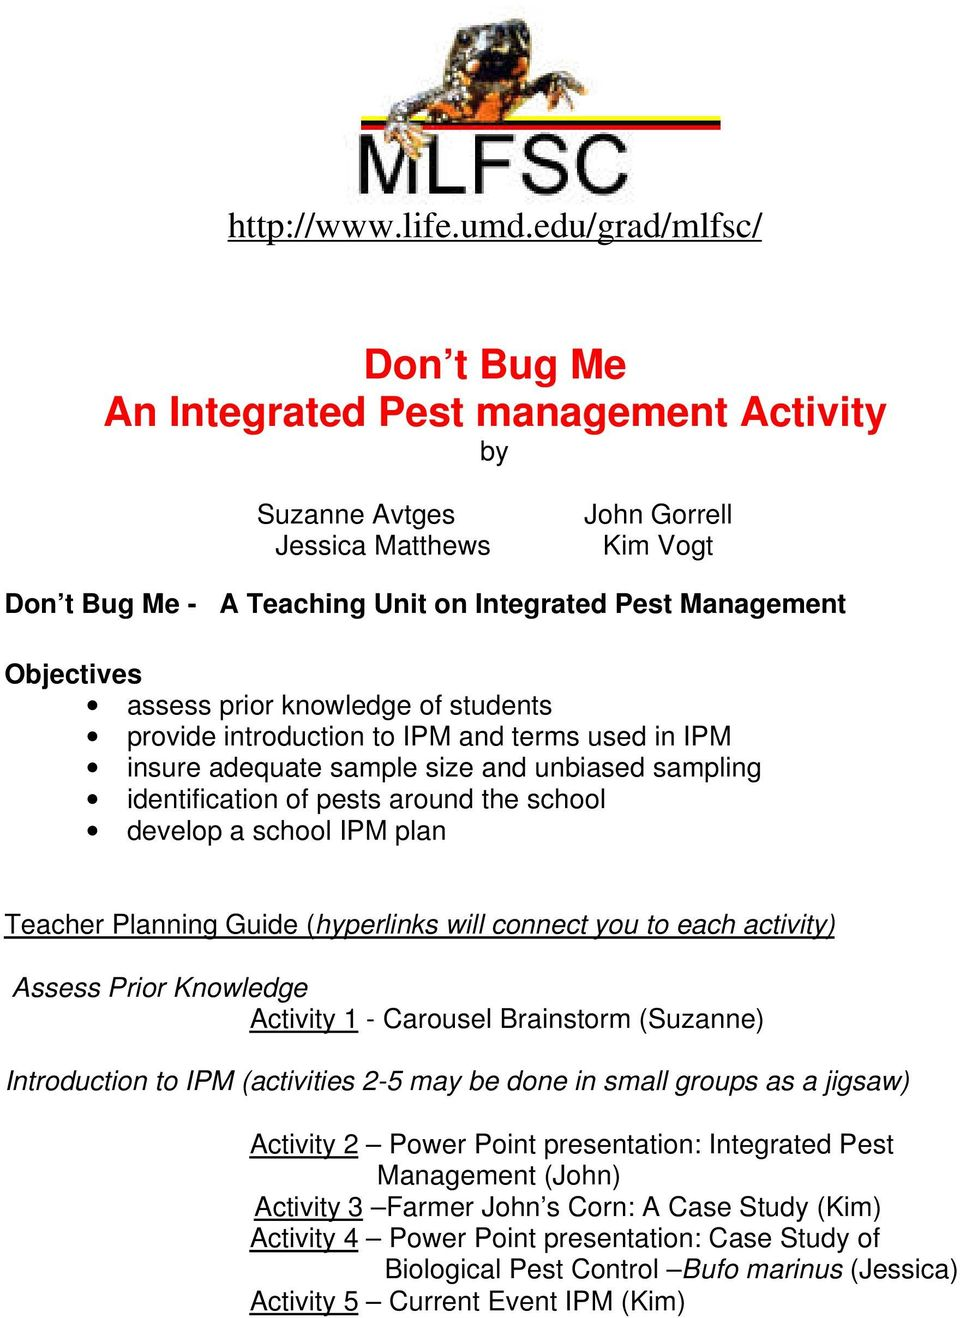 assess prior knowledge of students provide introduction to IPM and terms used in IPM insure adequate sample size and unbiased sampling identification of pests around the school develop a school IPM